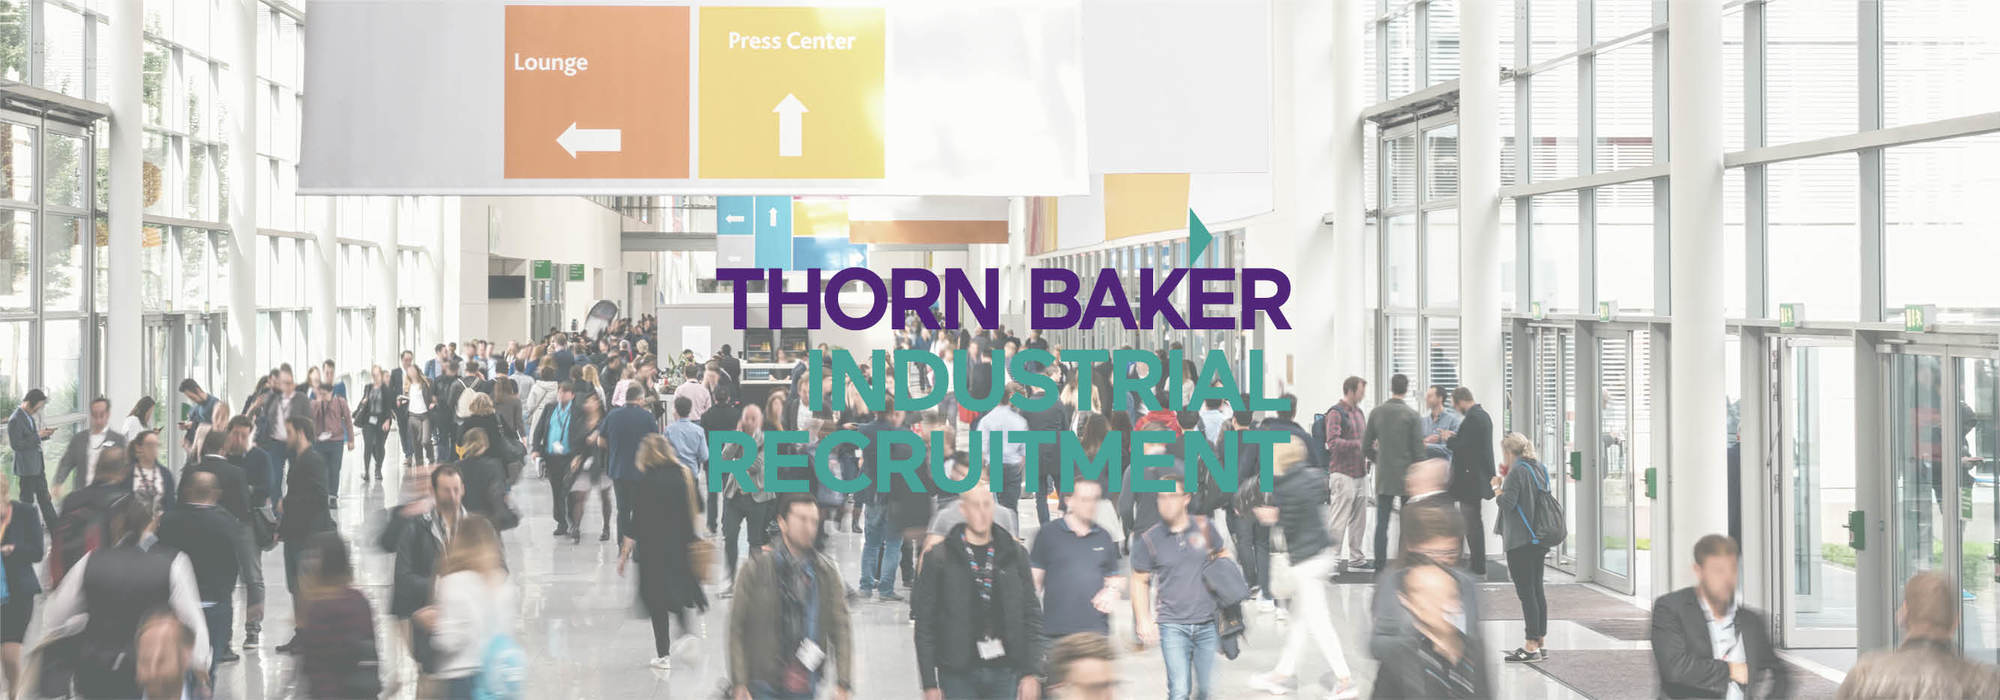 Thorn Baker Industrial Recruitment The Top Warehouse and Logistics Events You Can Still Attend This Year